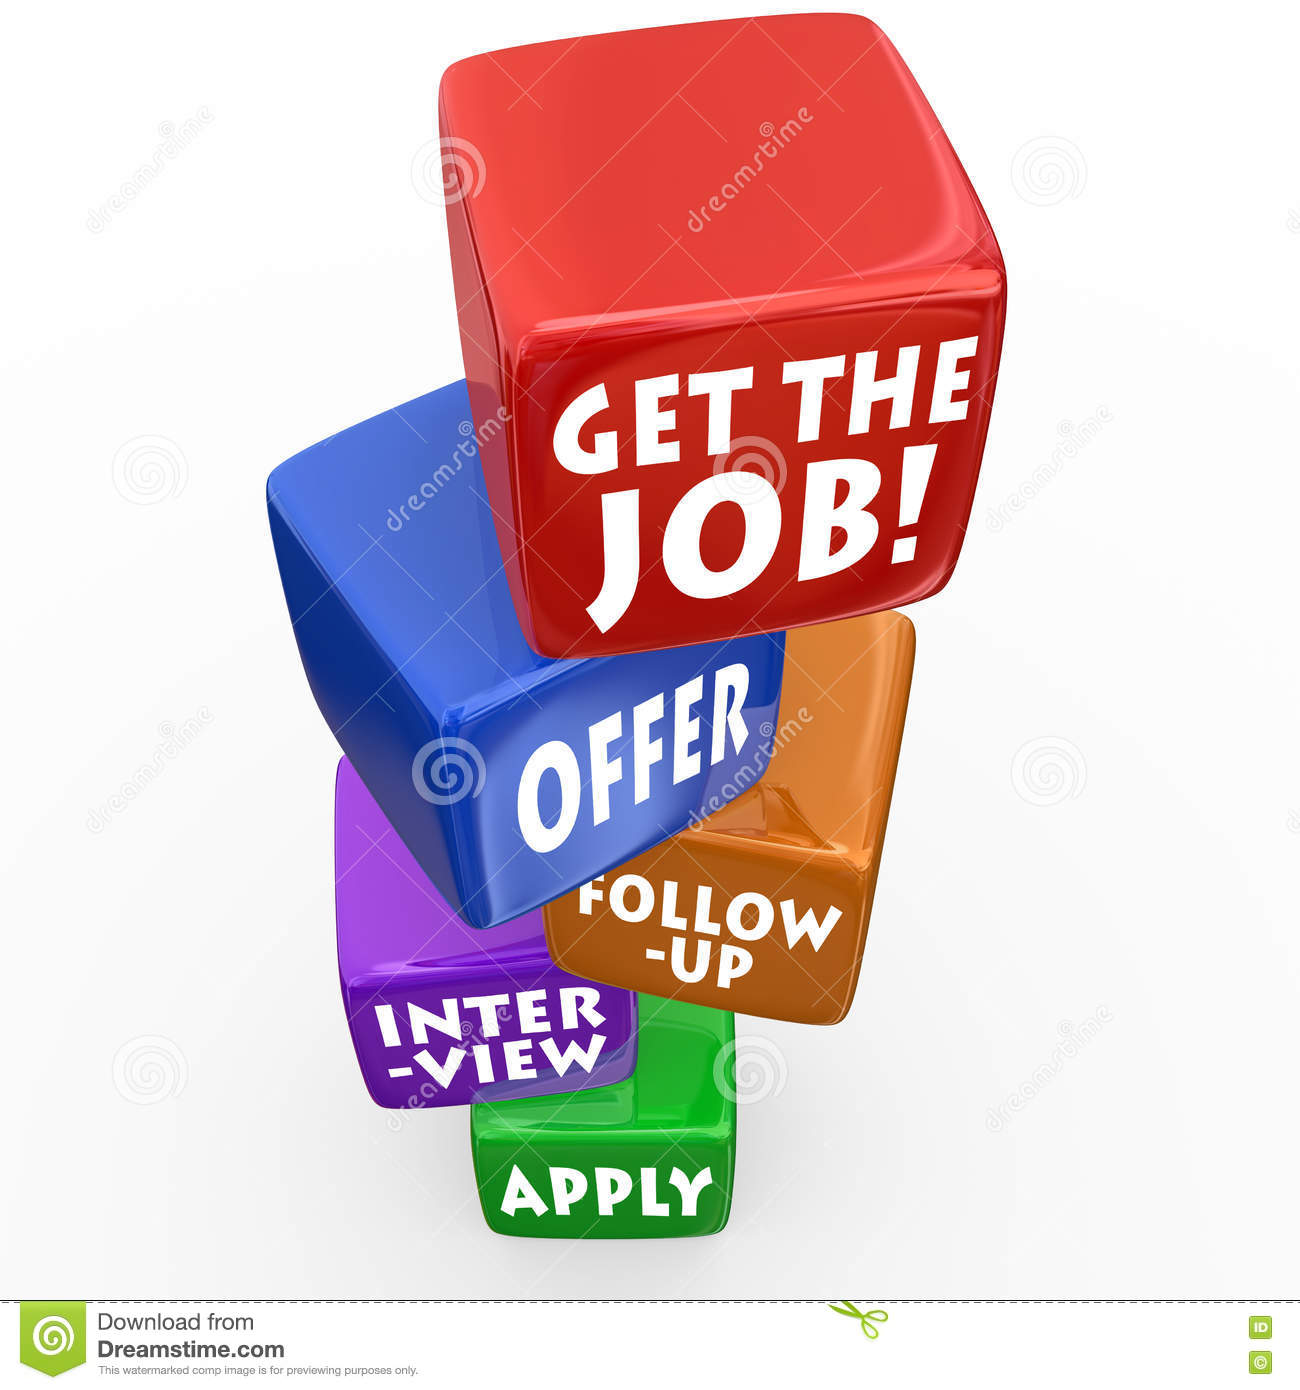 get the job application process interview follow up offer stock get the job application process interview follow up offer